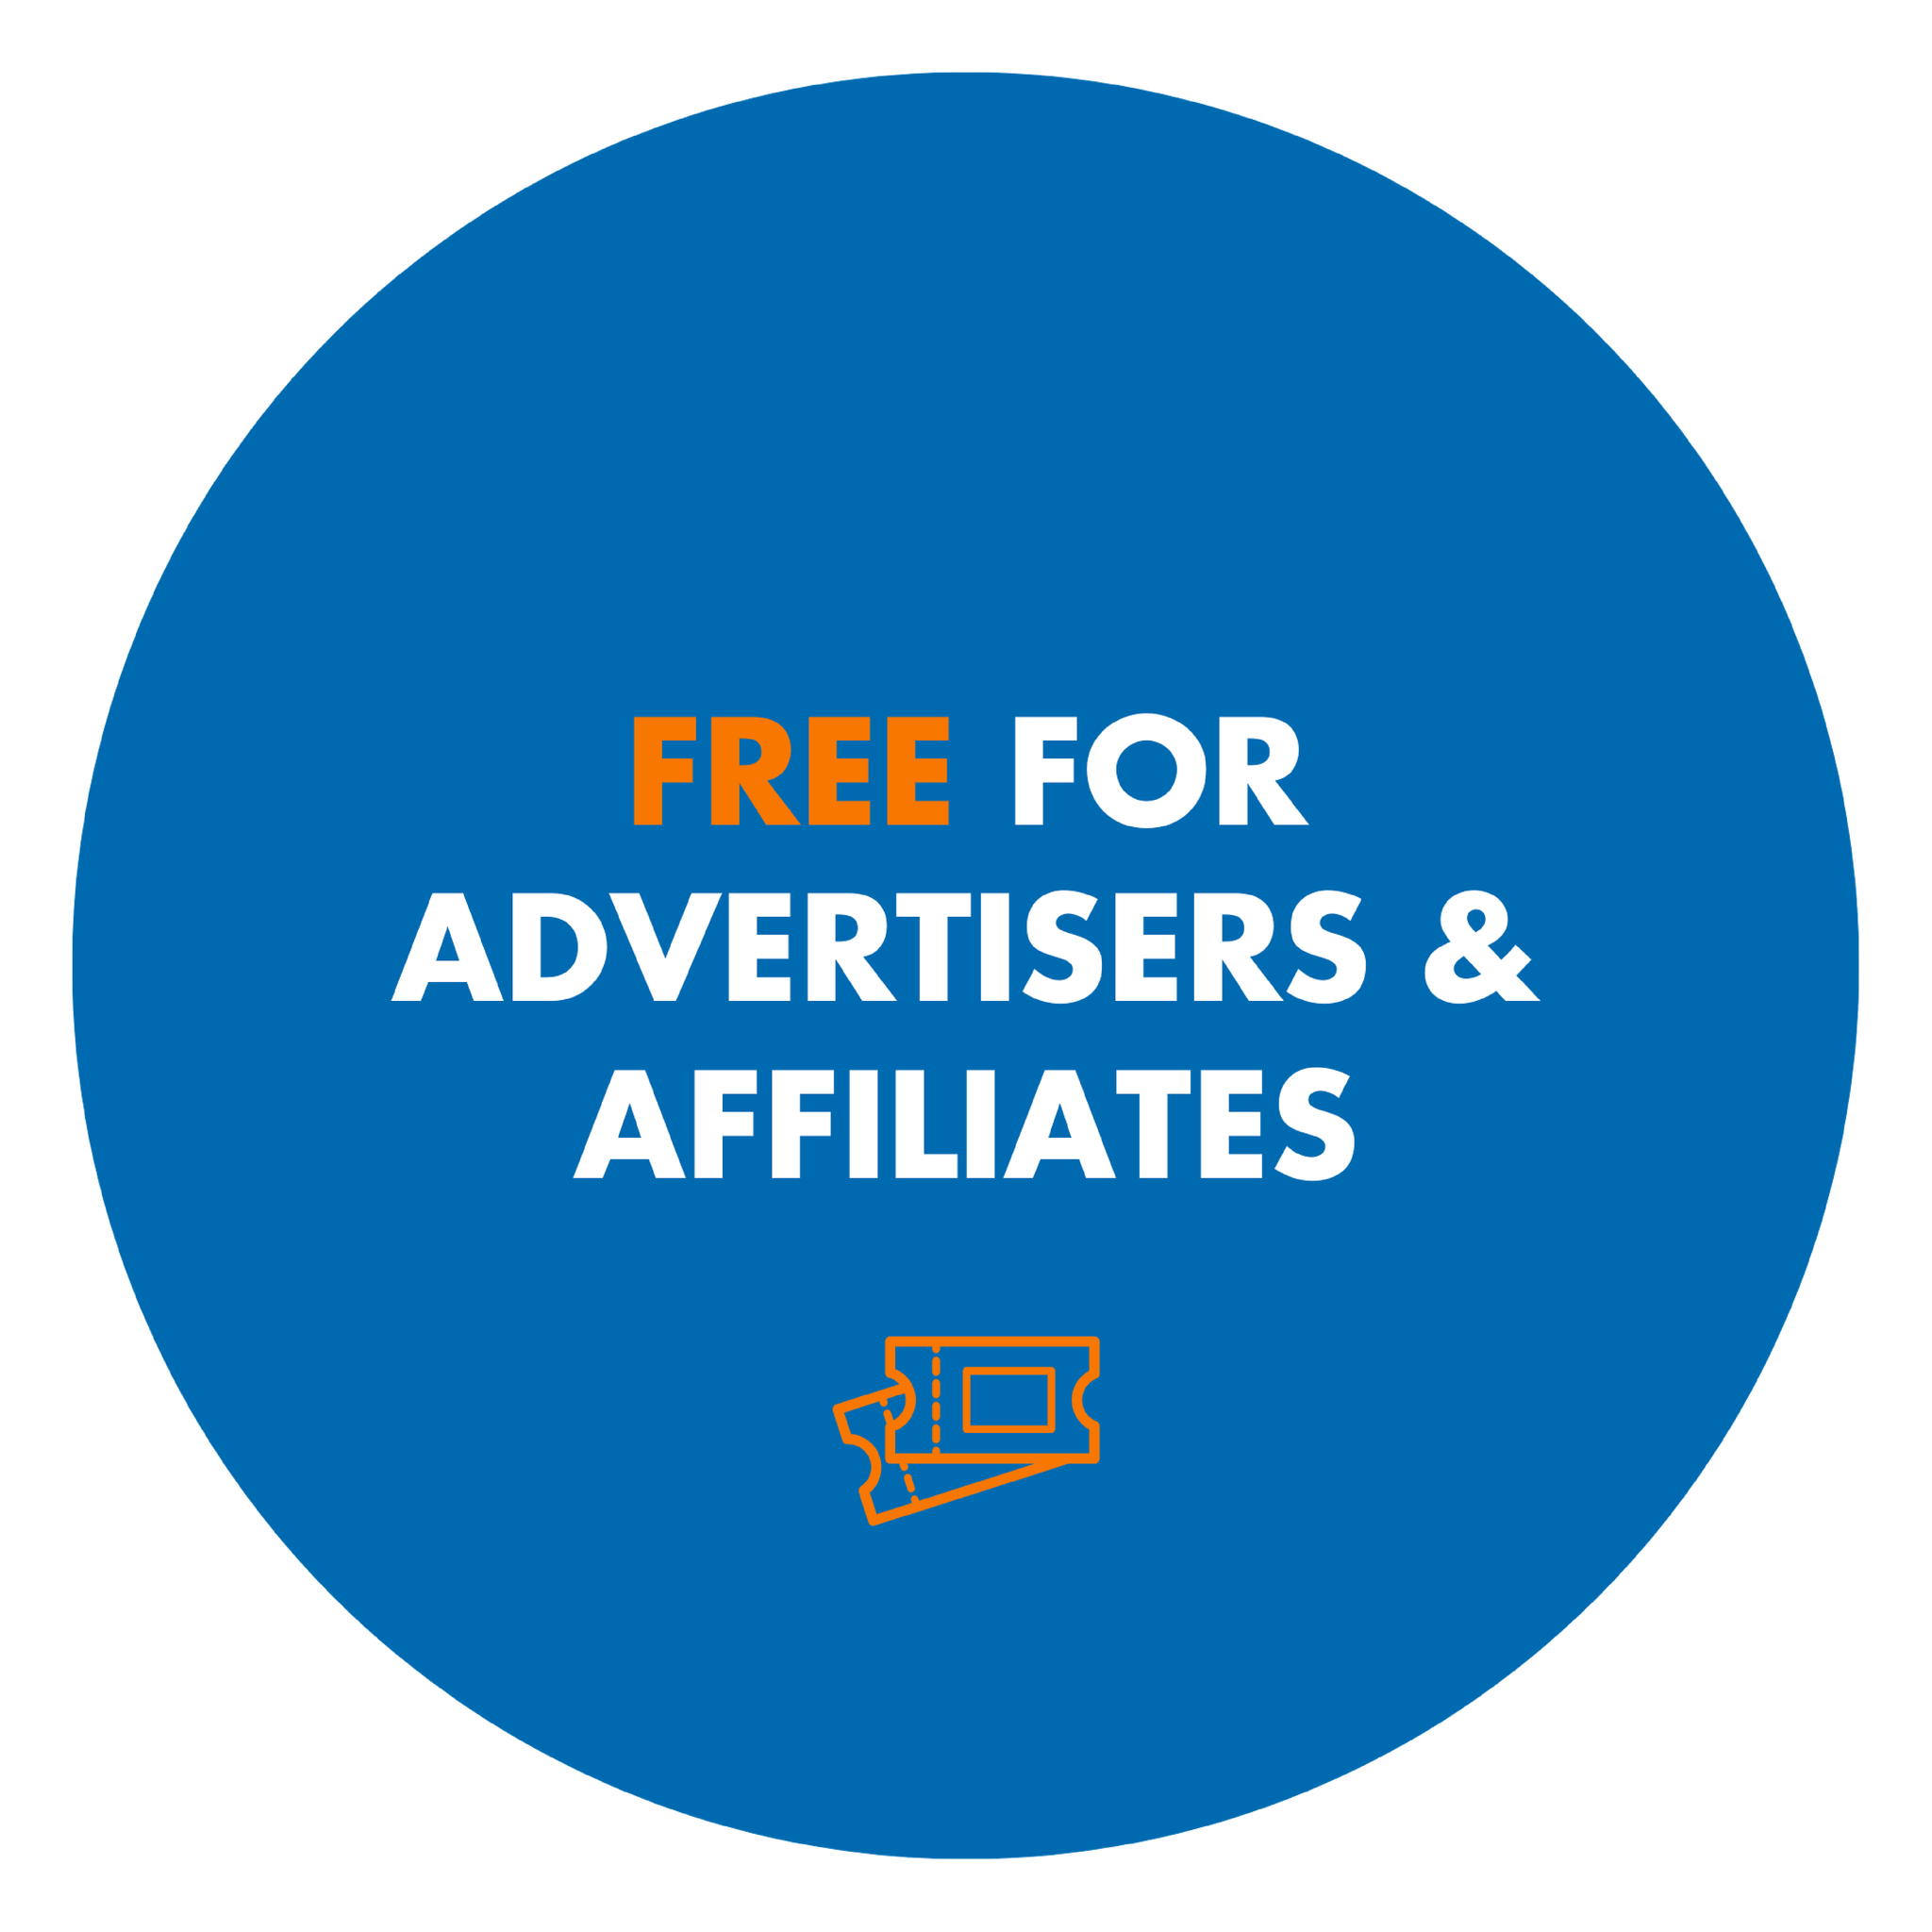 Free for affiliates